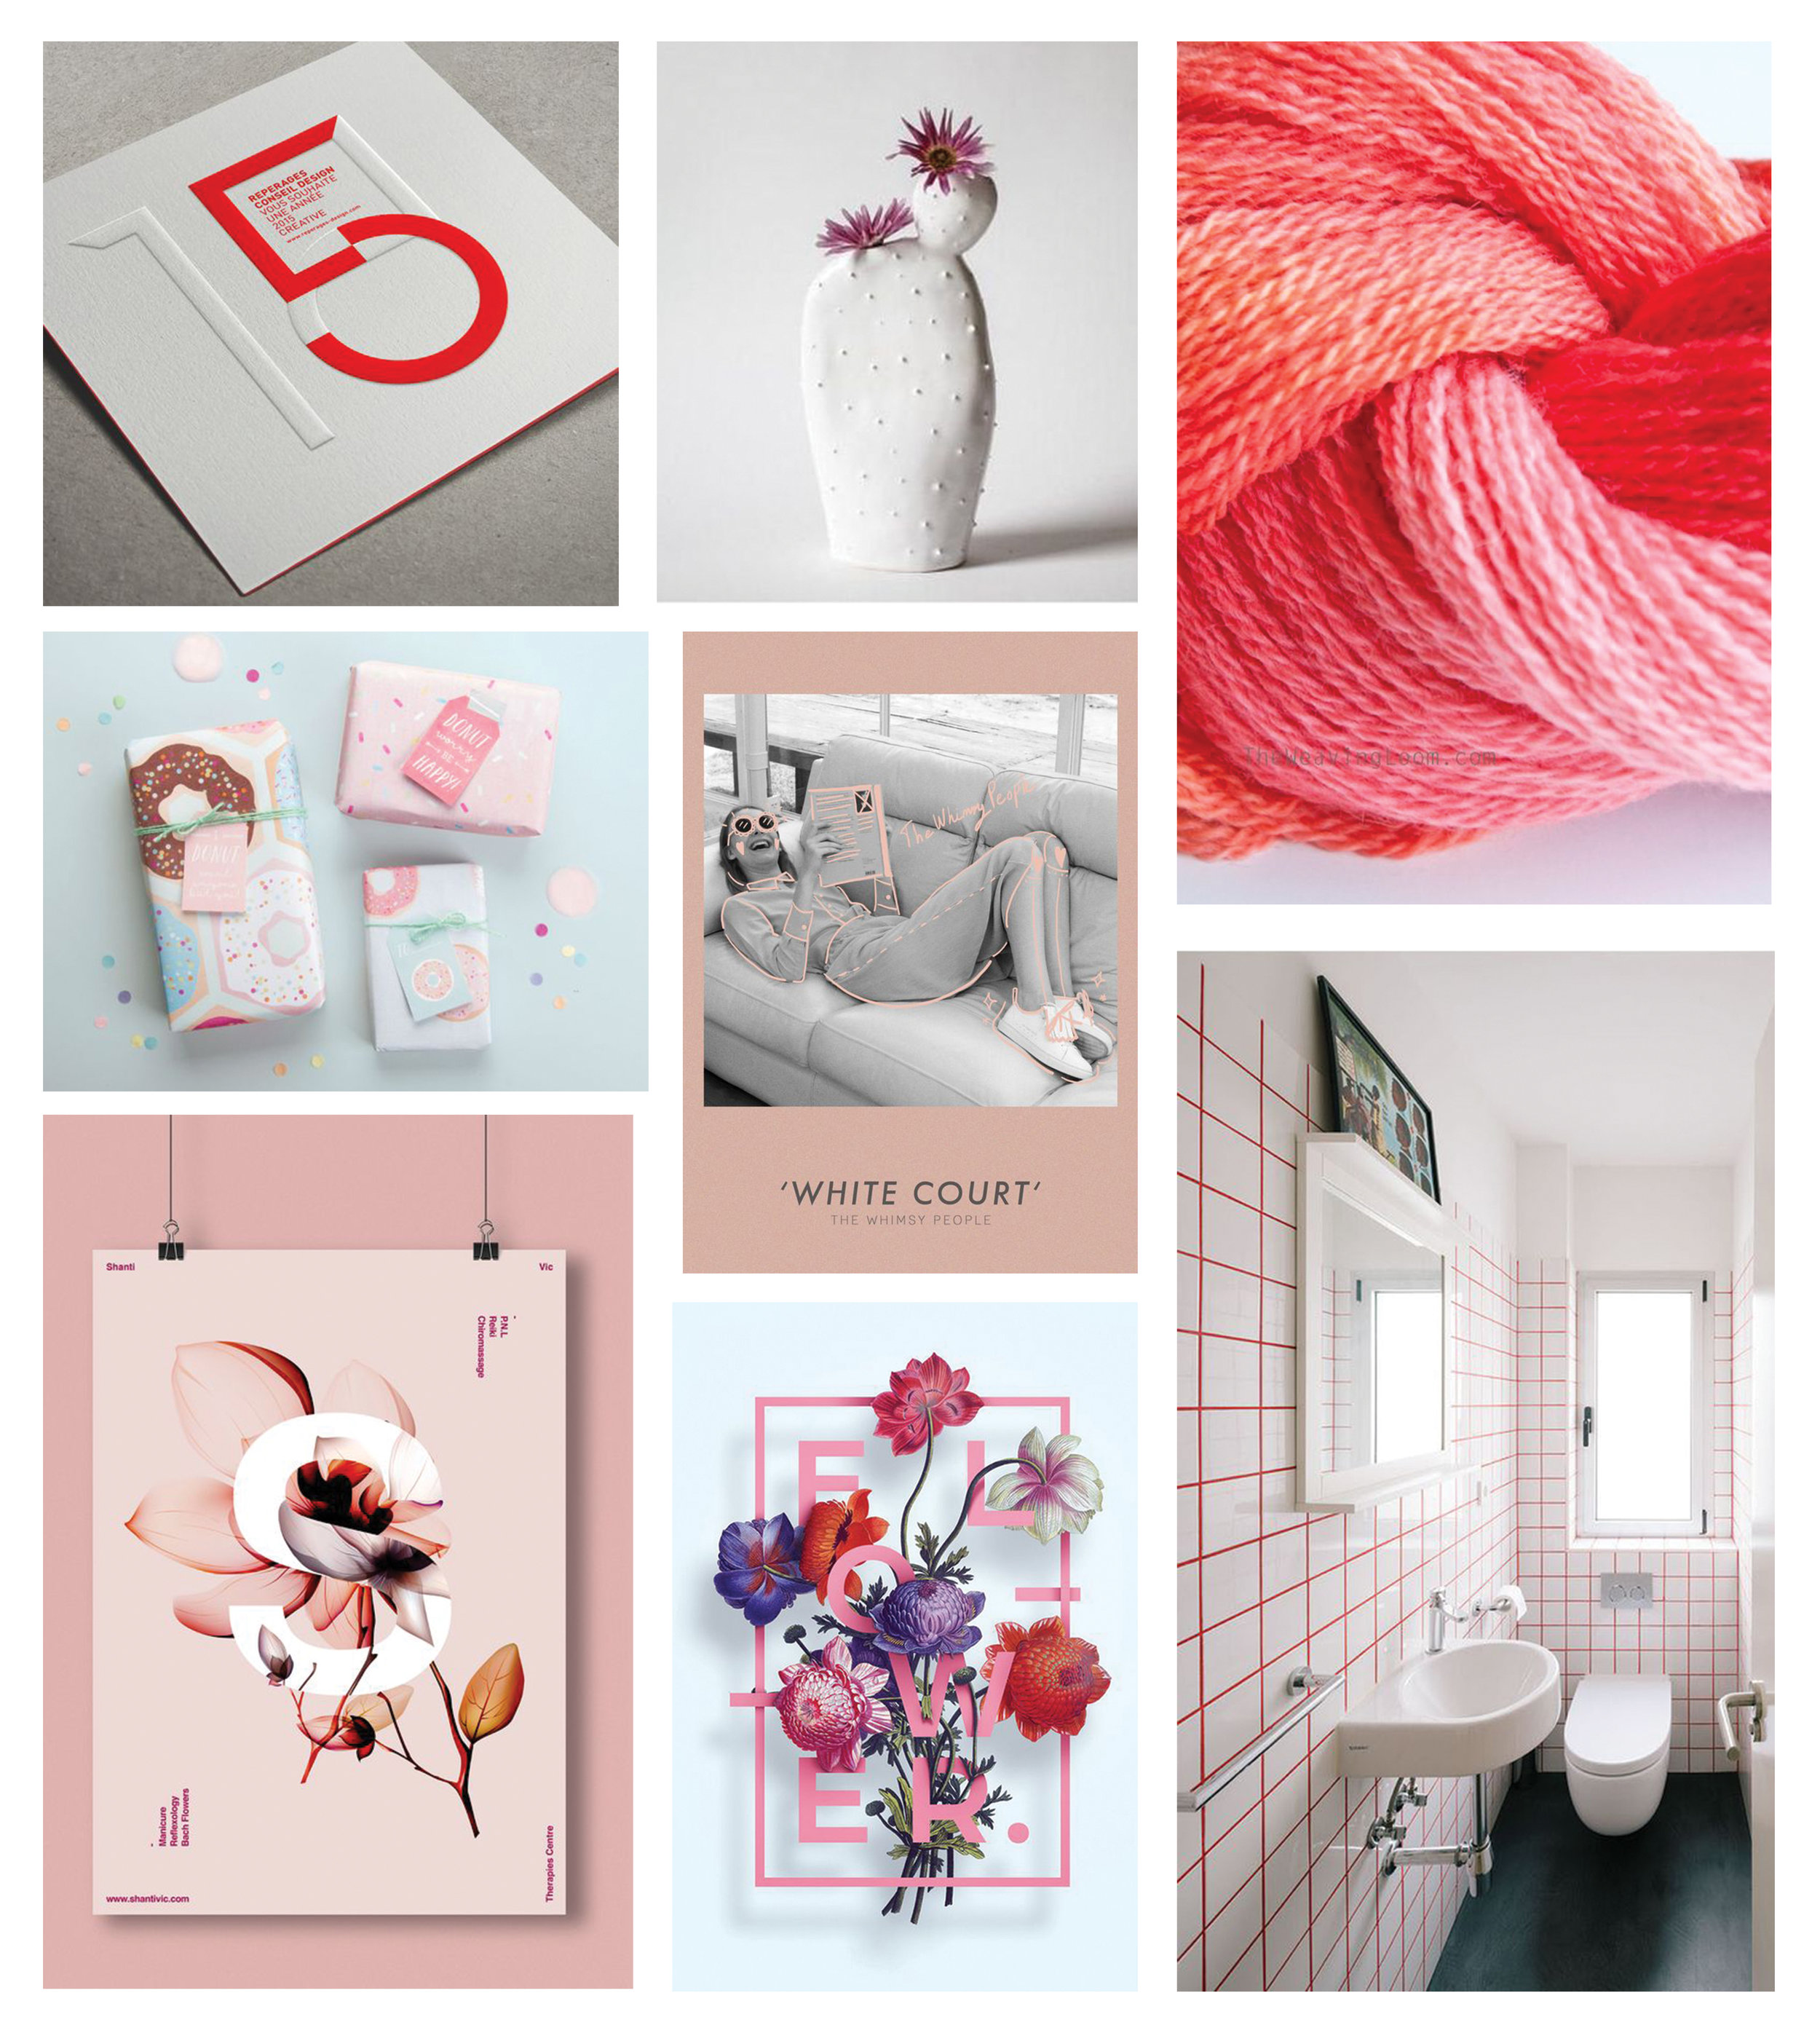 Weekly Inspiration with Monday Mood Board 74 | The Paper Curator